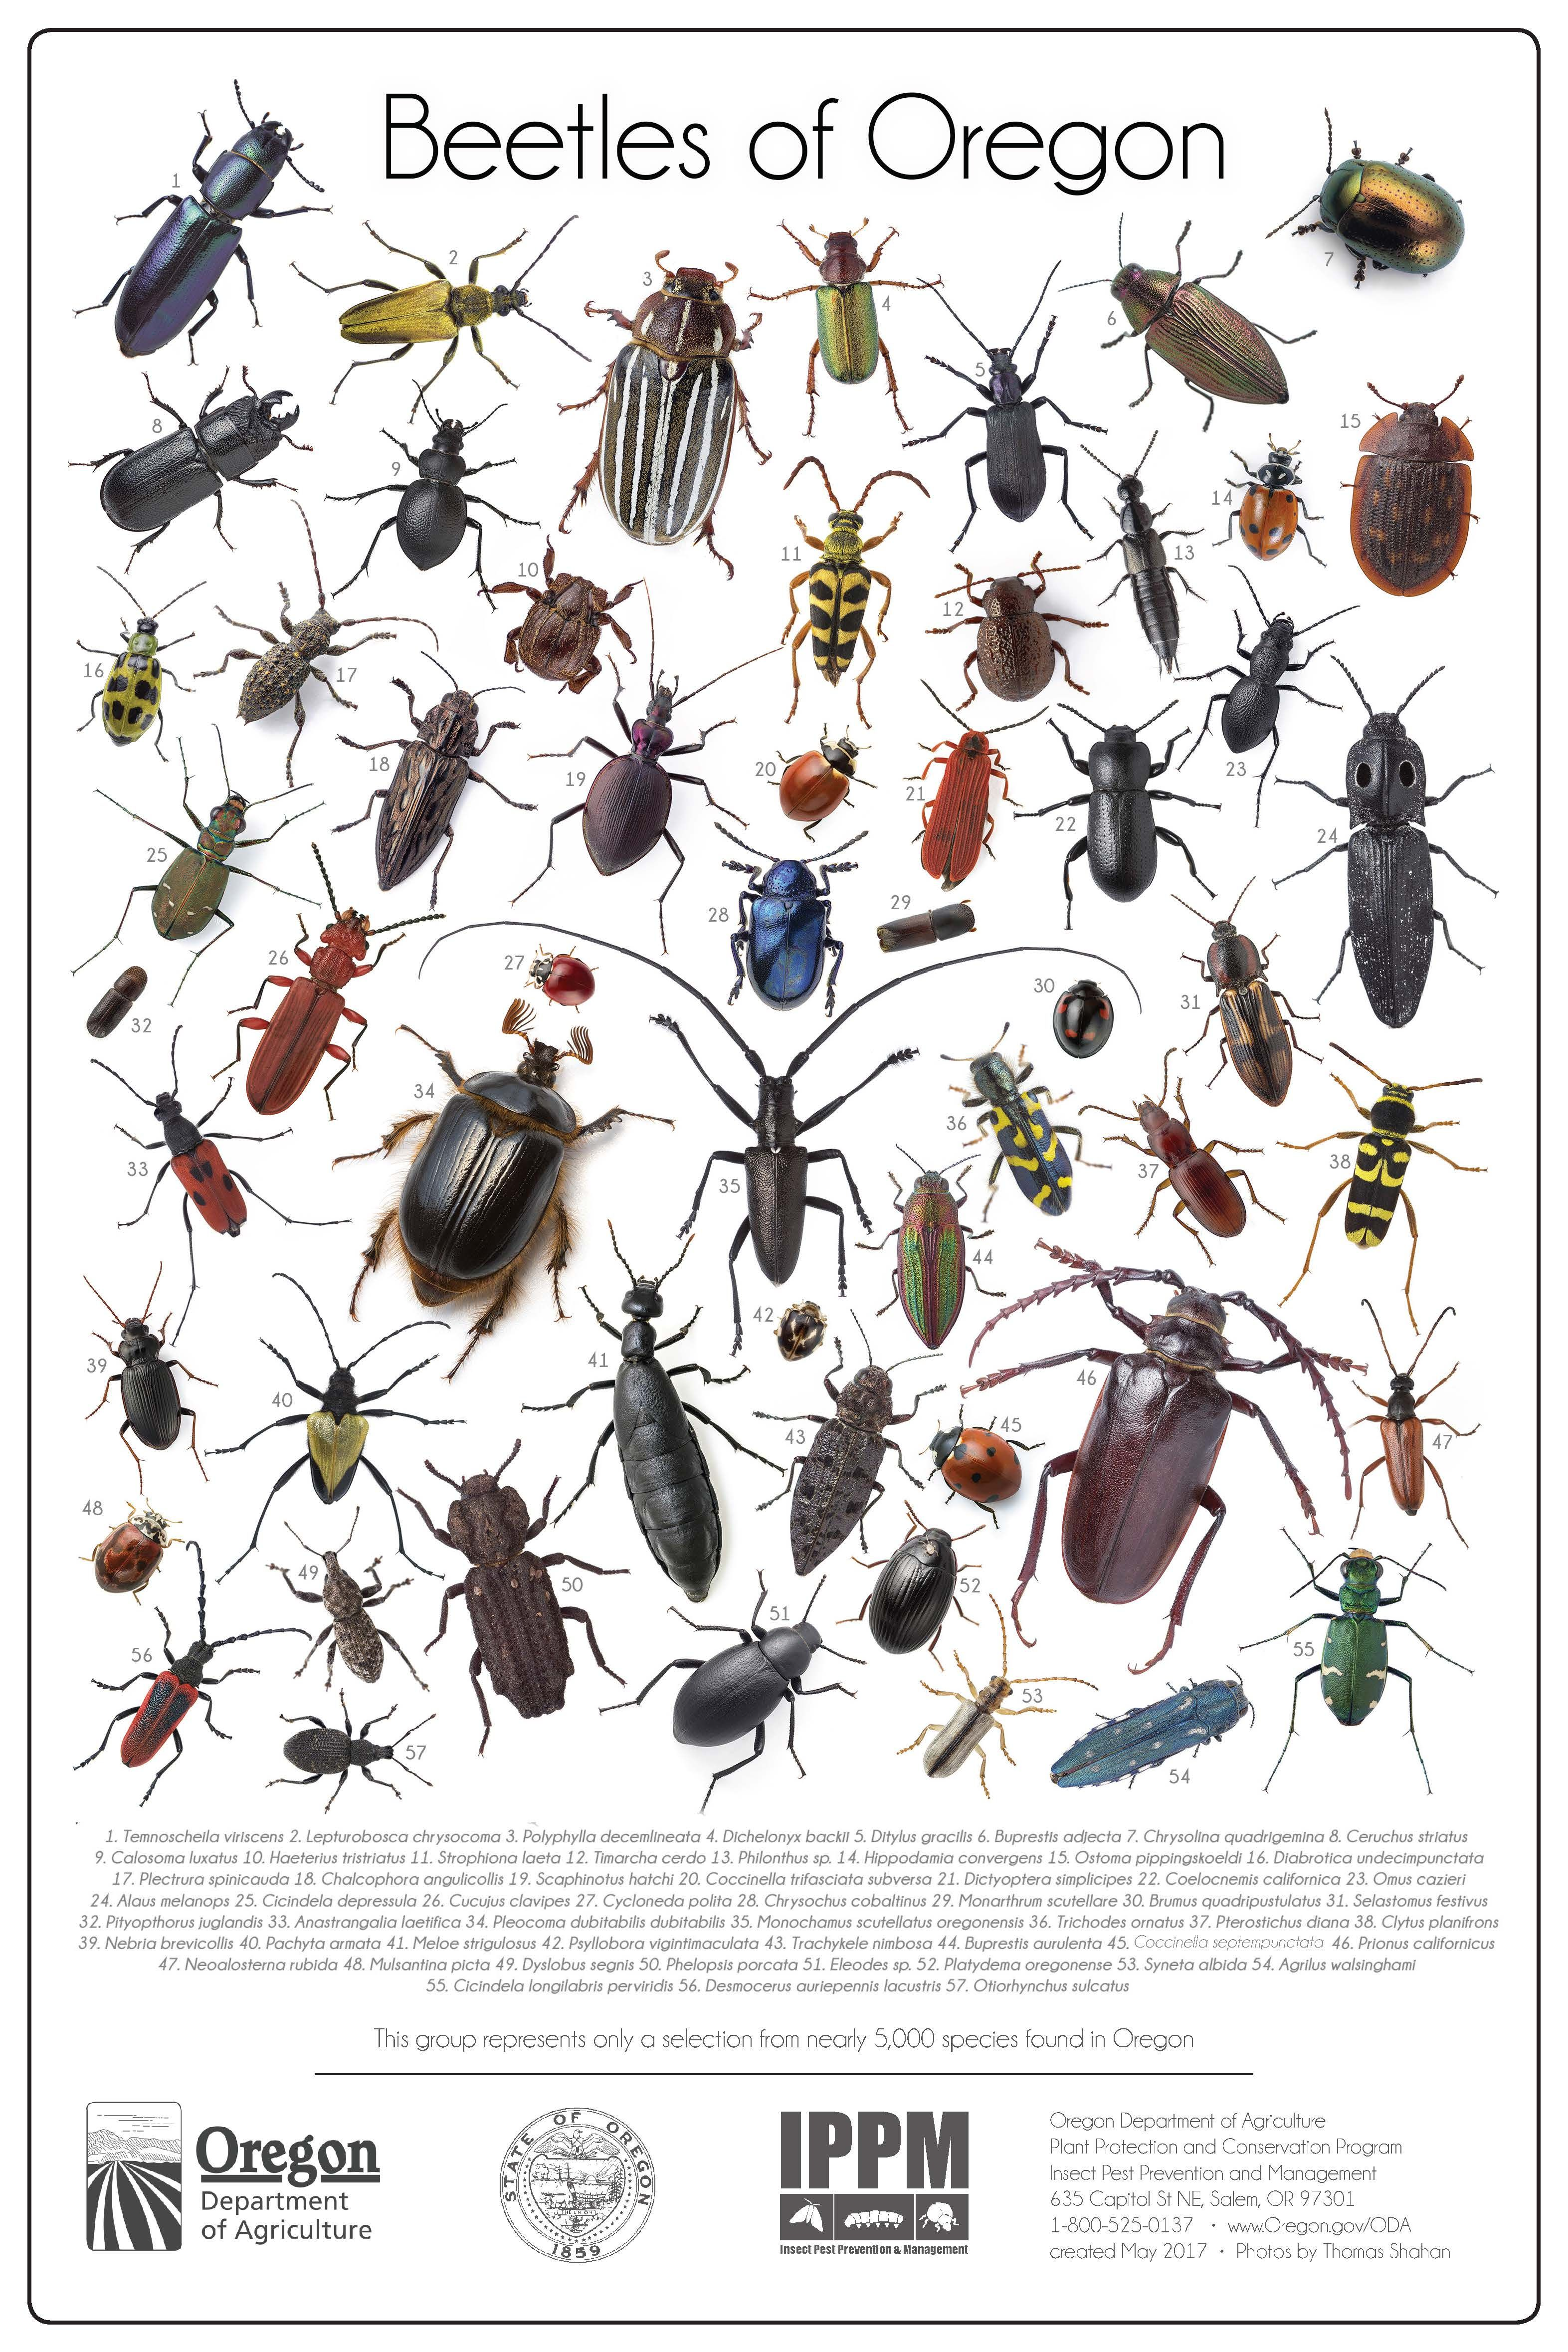 Beetles Of Oregon By The Oregon Department Of Agriculture Insect Pest Prevention And Management Beetle Insect Identification Cool Beetles